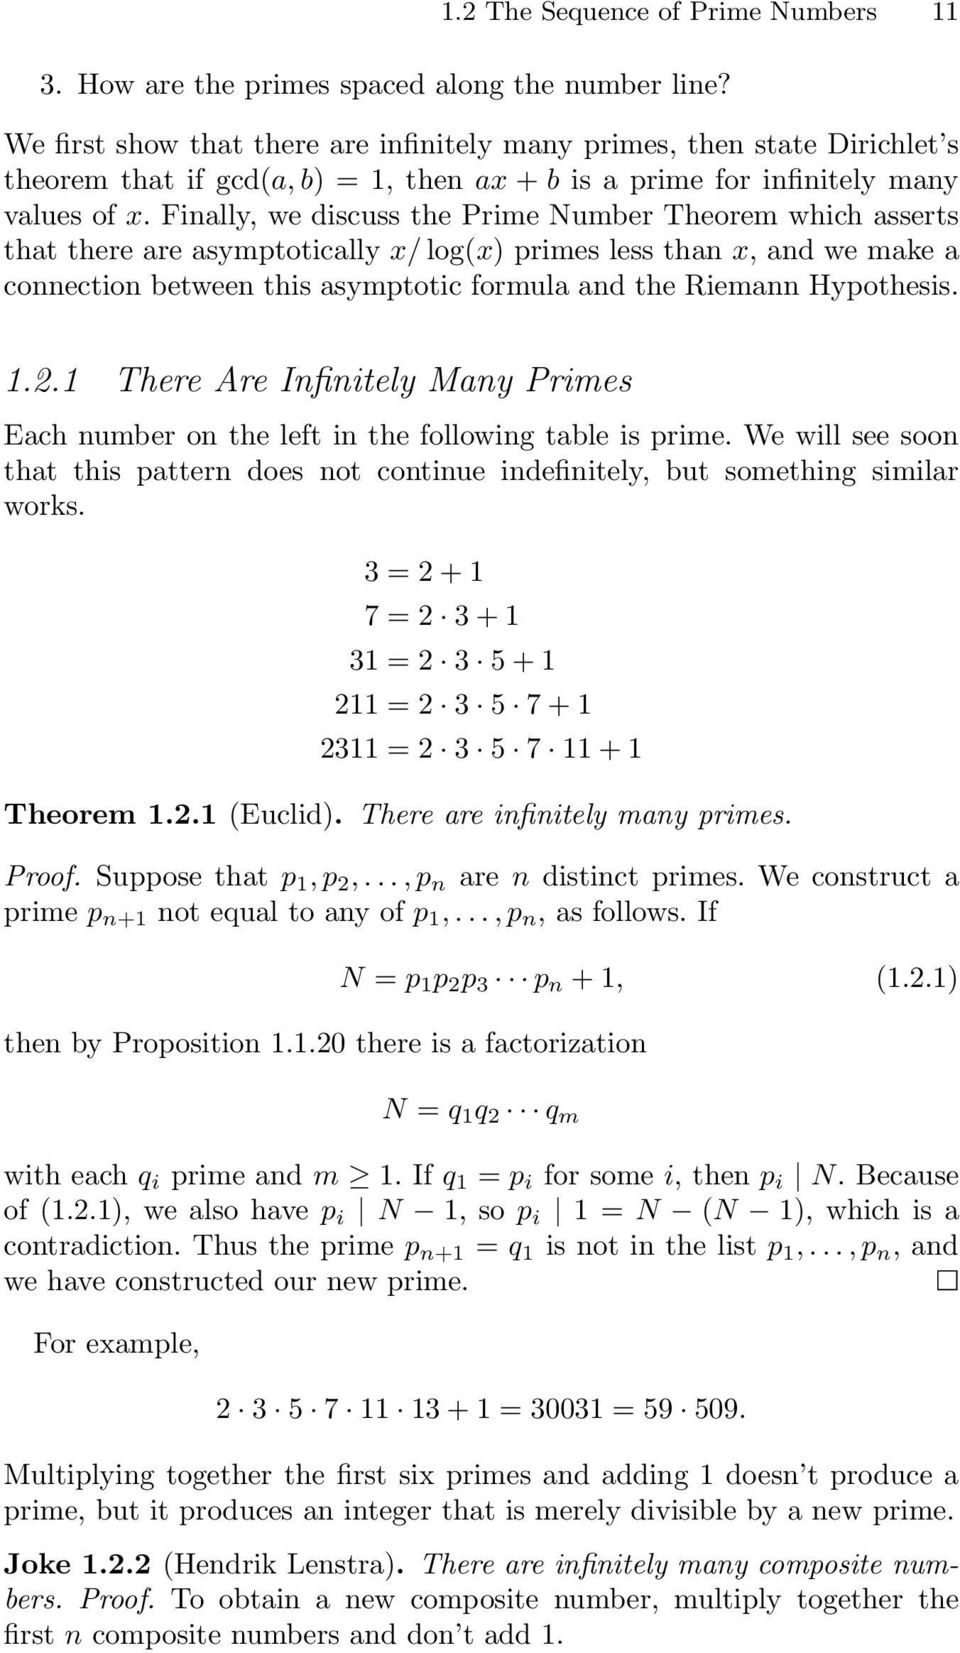 Finally, we discuss the Prime Number Theorem which asserts that there are asymtotically x/ log(x) rimes less than x, and we make a connection between this asymtotic formula and the Riemann Hyothesis.